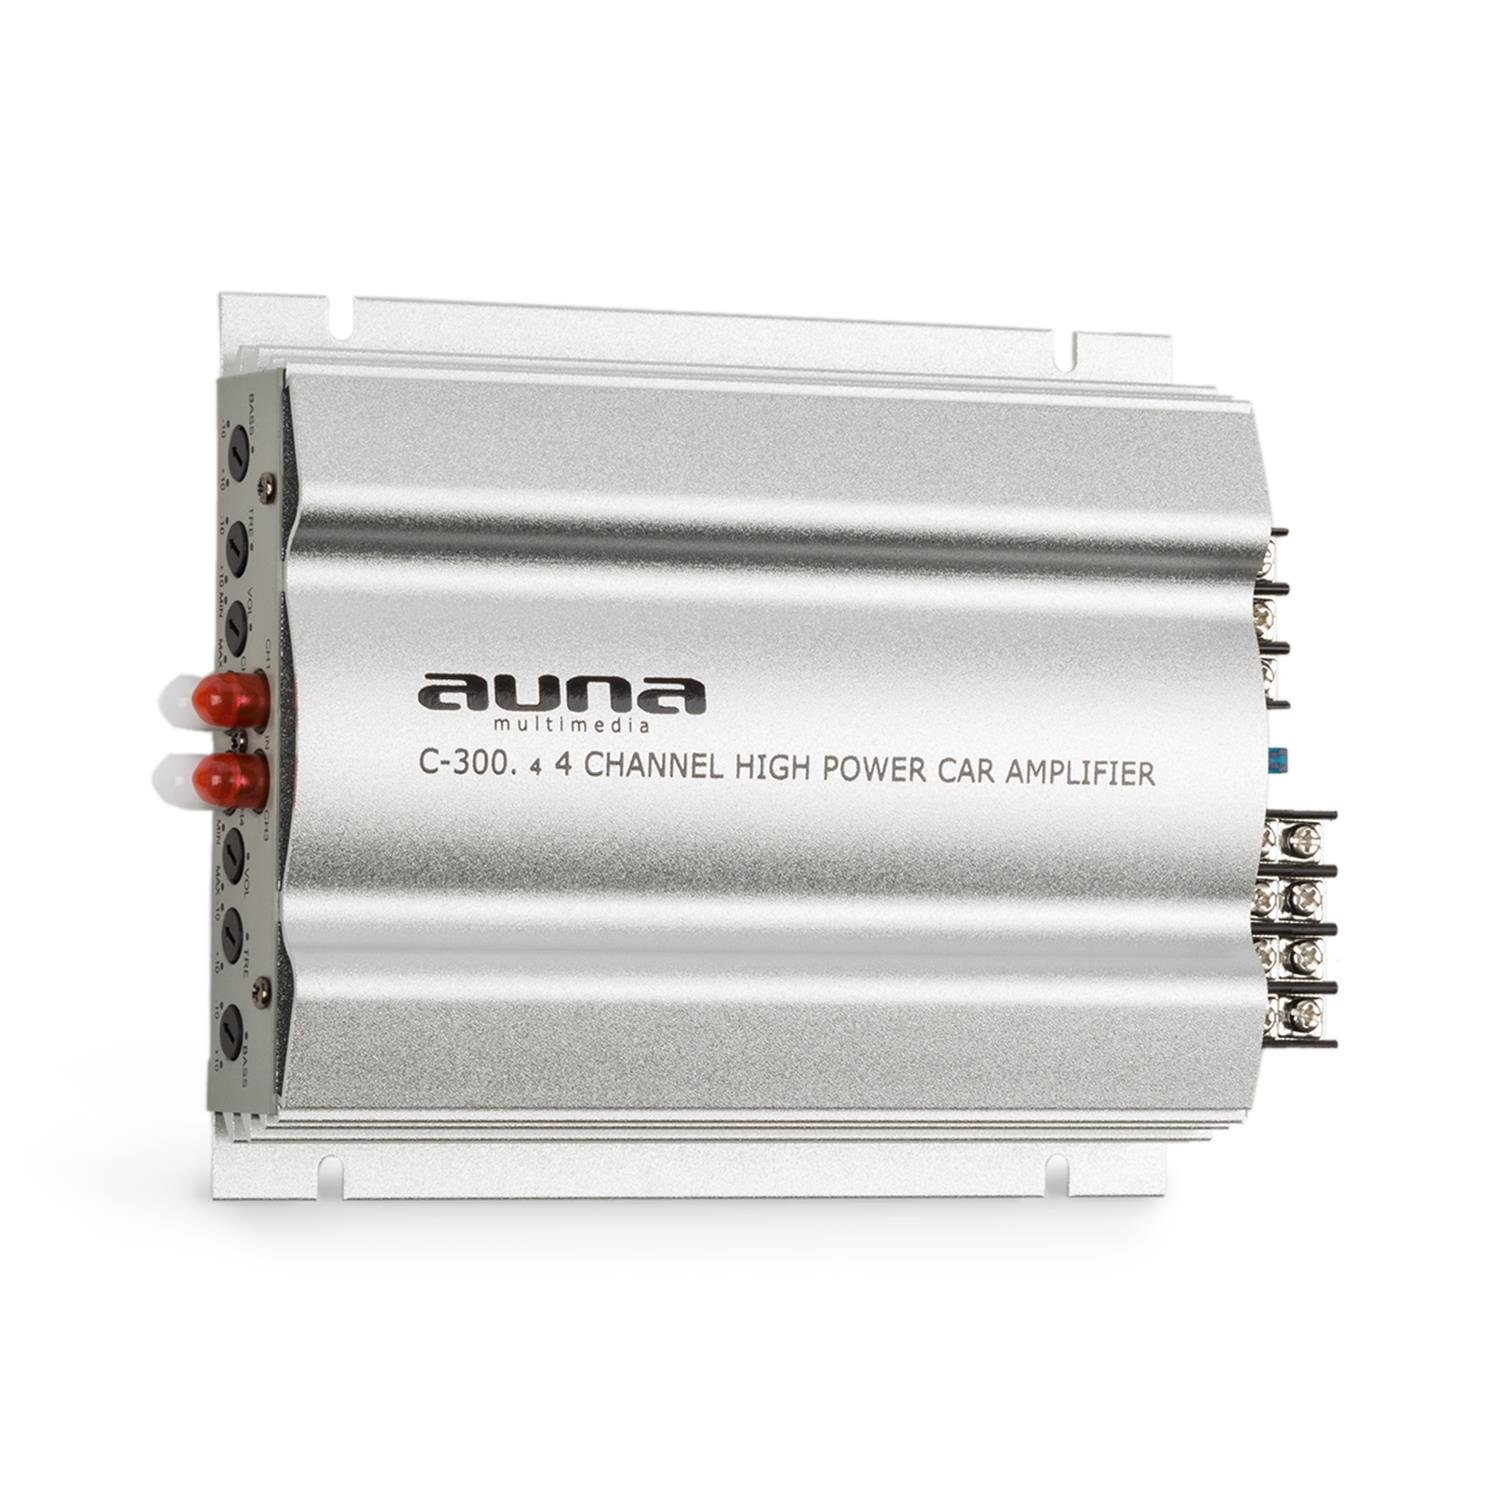 auna C300.4 • 4-channel power amplifier • Auto amplifier • Amp 1200W PMPO • 300W RMS output • Adjustable volume • Multi-connection option • Weight 846g • Bass and treble adjustable ± 10dB • Silver